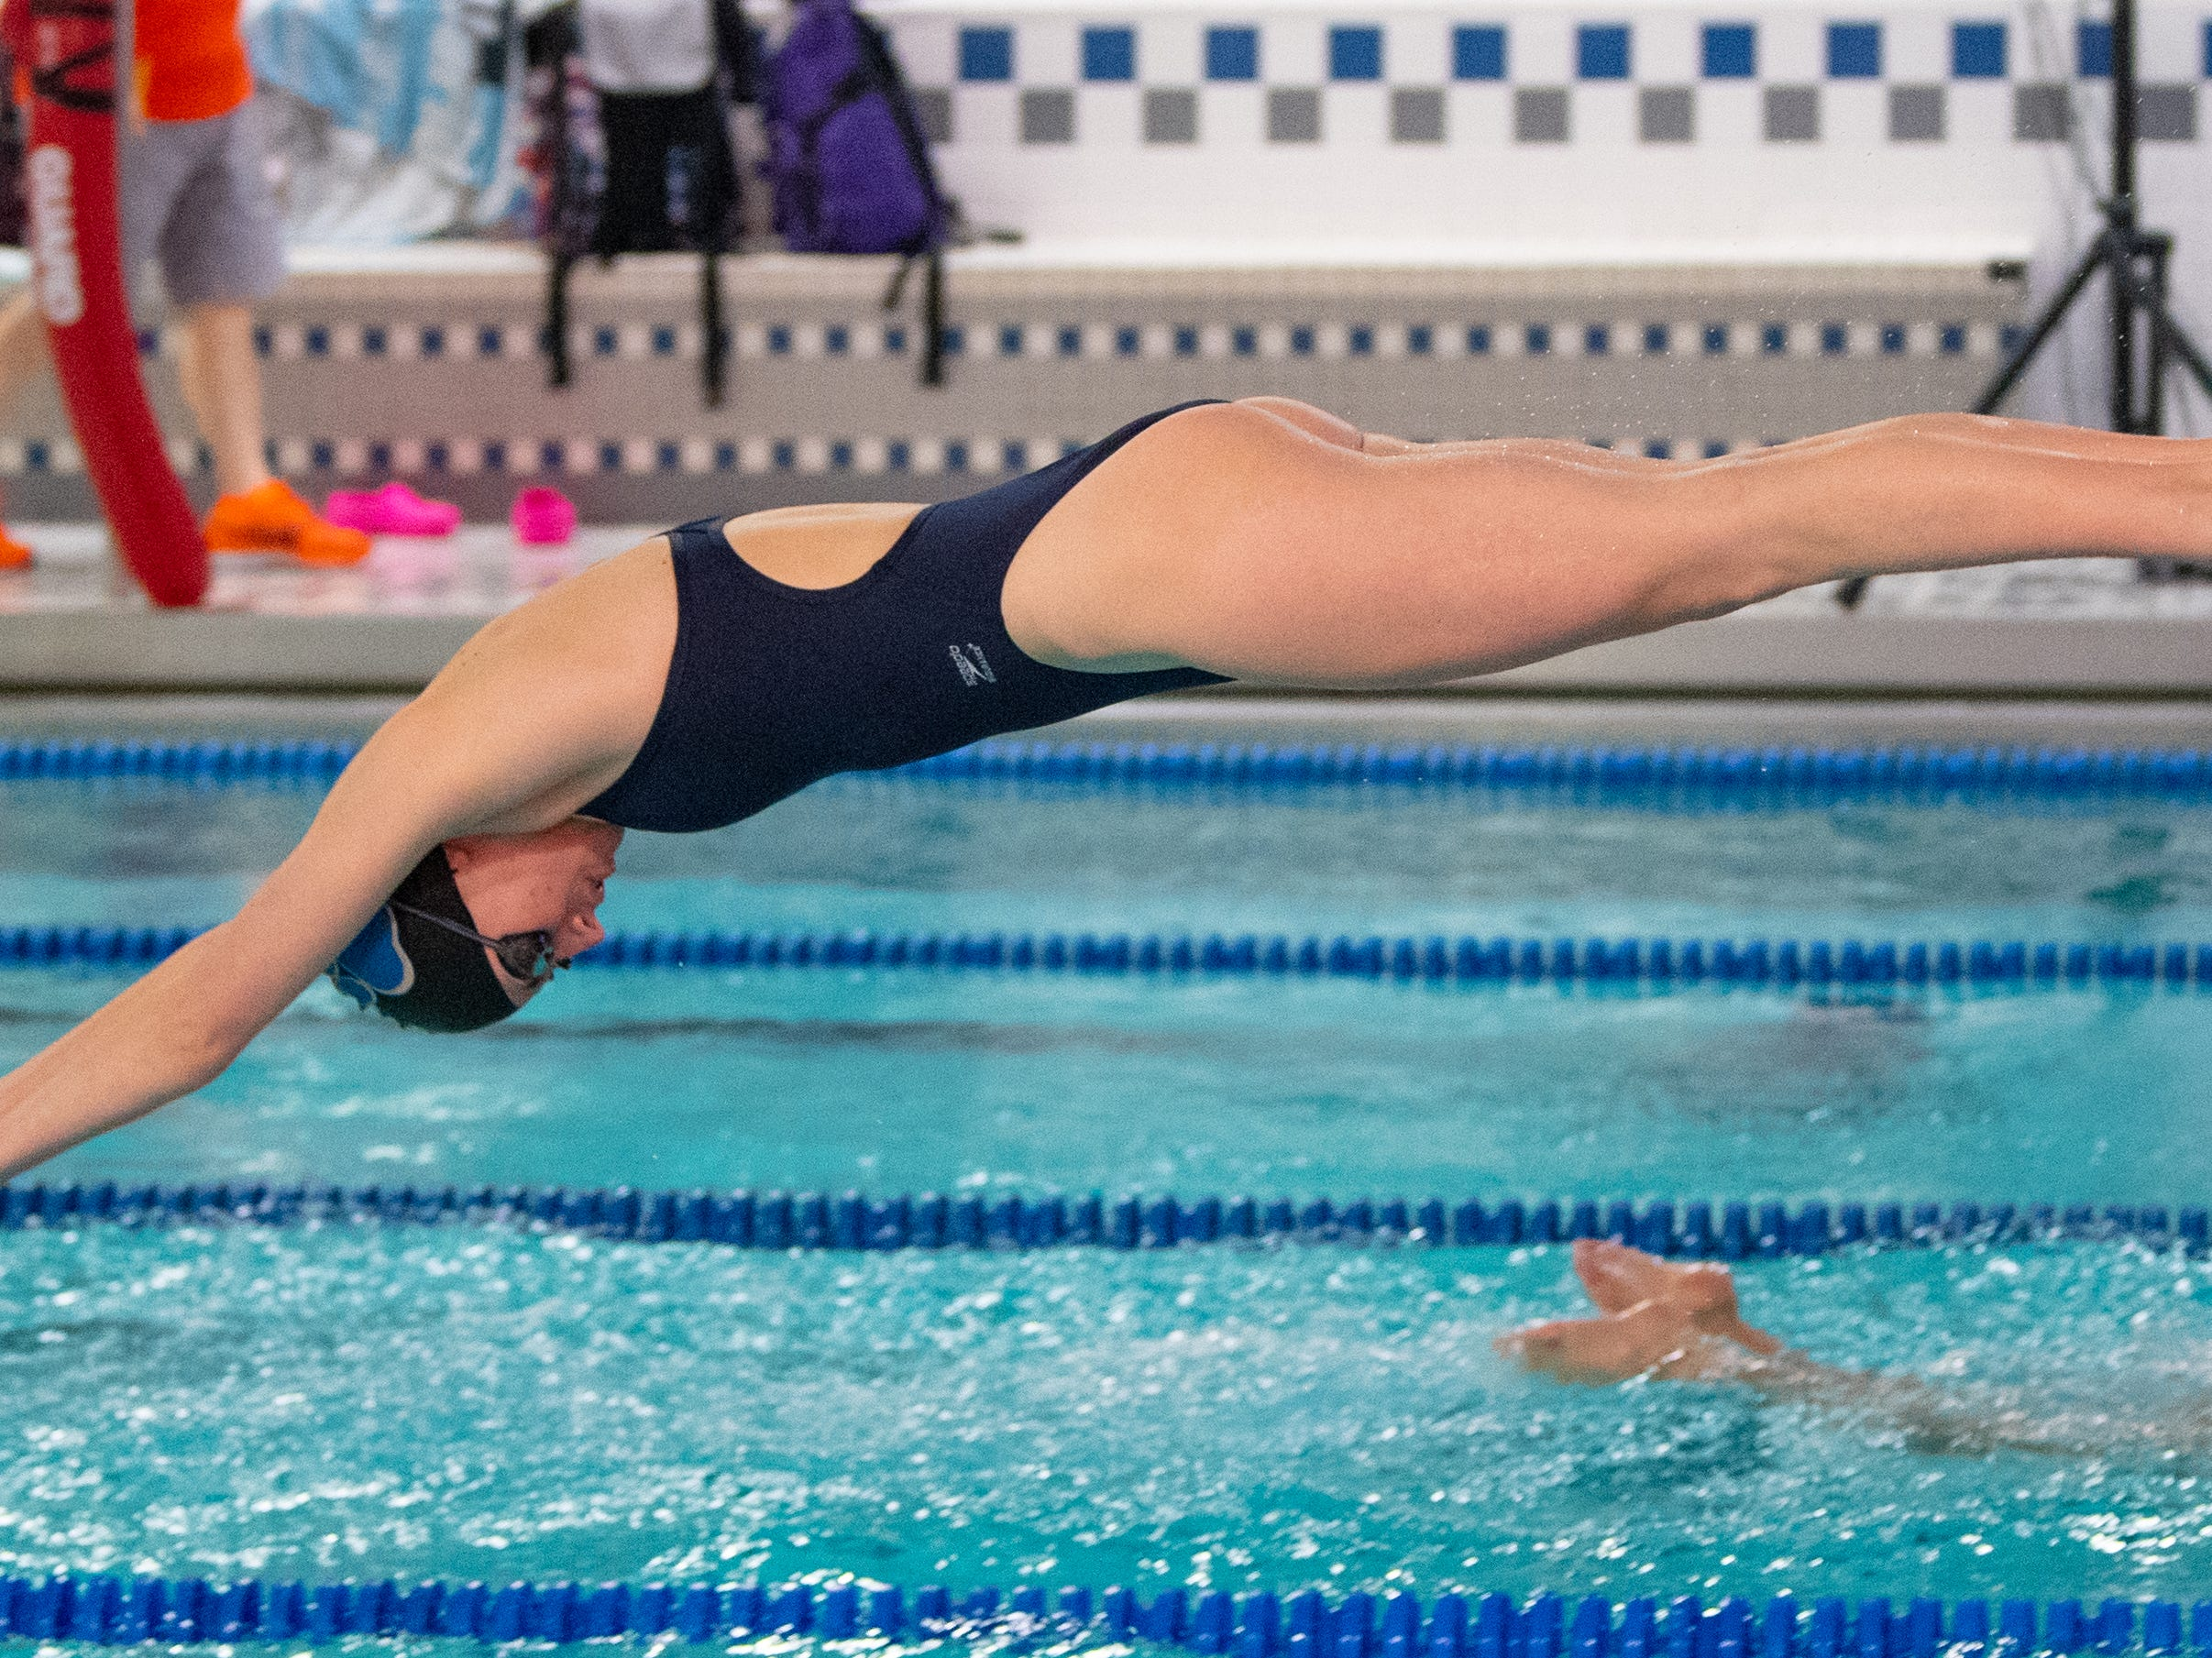 Taylar Myers focuses on her form during the boys' and girls' swim meet between Dallastown and Central York at Dallastown Area High School, January 10, 2019. The Panthers defeated the Wildcats 93 to 77 and the Lady Panthers defeated the Lady Wildcats 96 to 74.